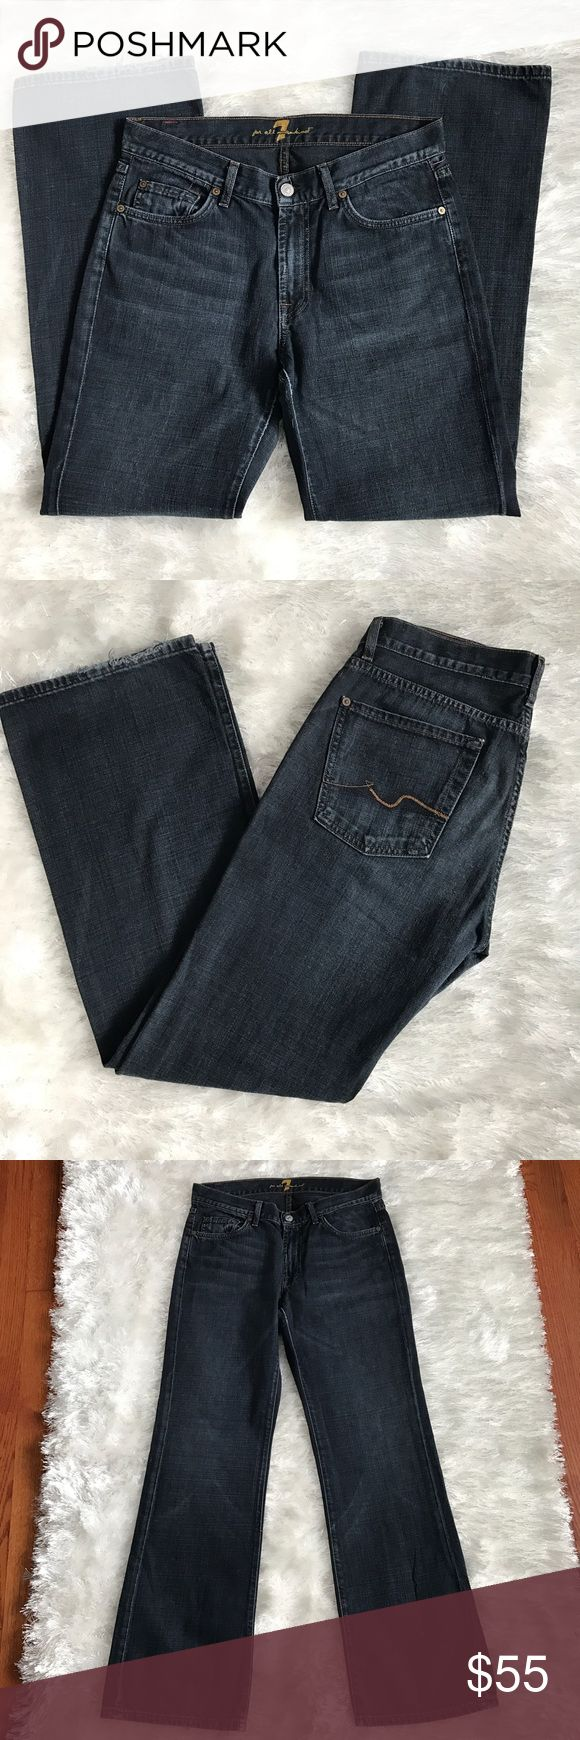 👱🏽 7 FOR ALL MANKIND Bootcut in New York Rinse Men's Bootcut Jeans from 7FAM (Seven). New York rinse is the wash. Inseam approx. 31. 7 For All Mankind Jeans Bootcut